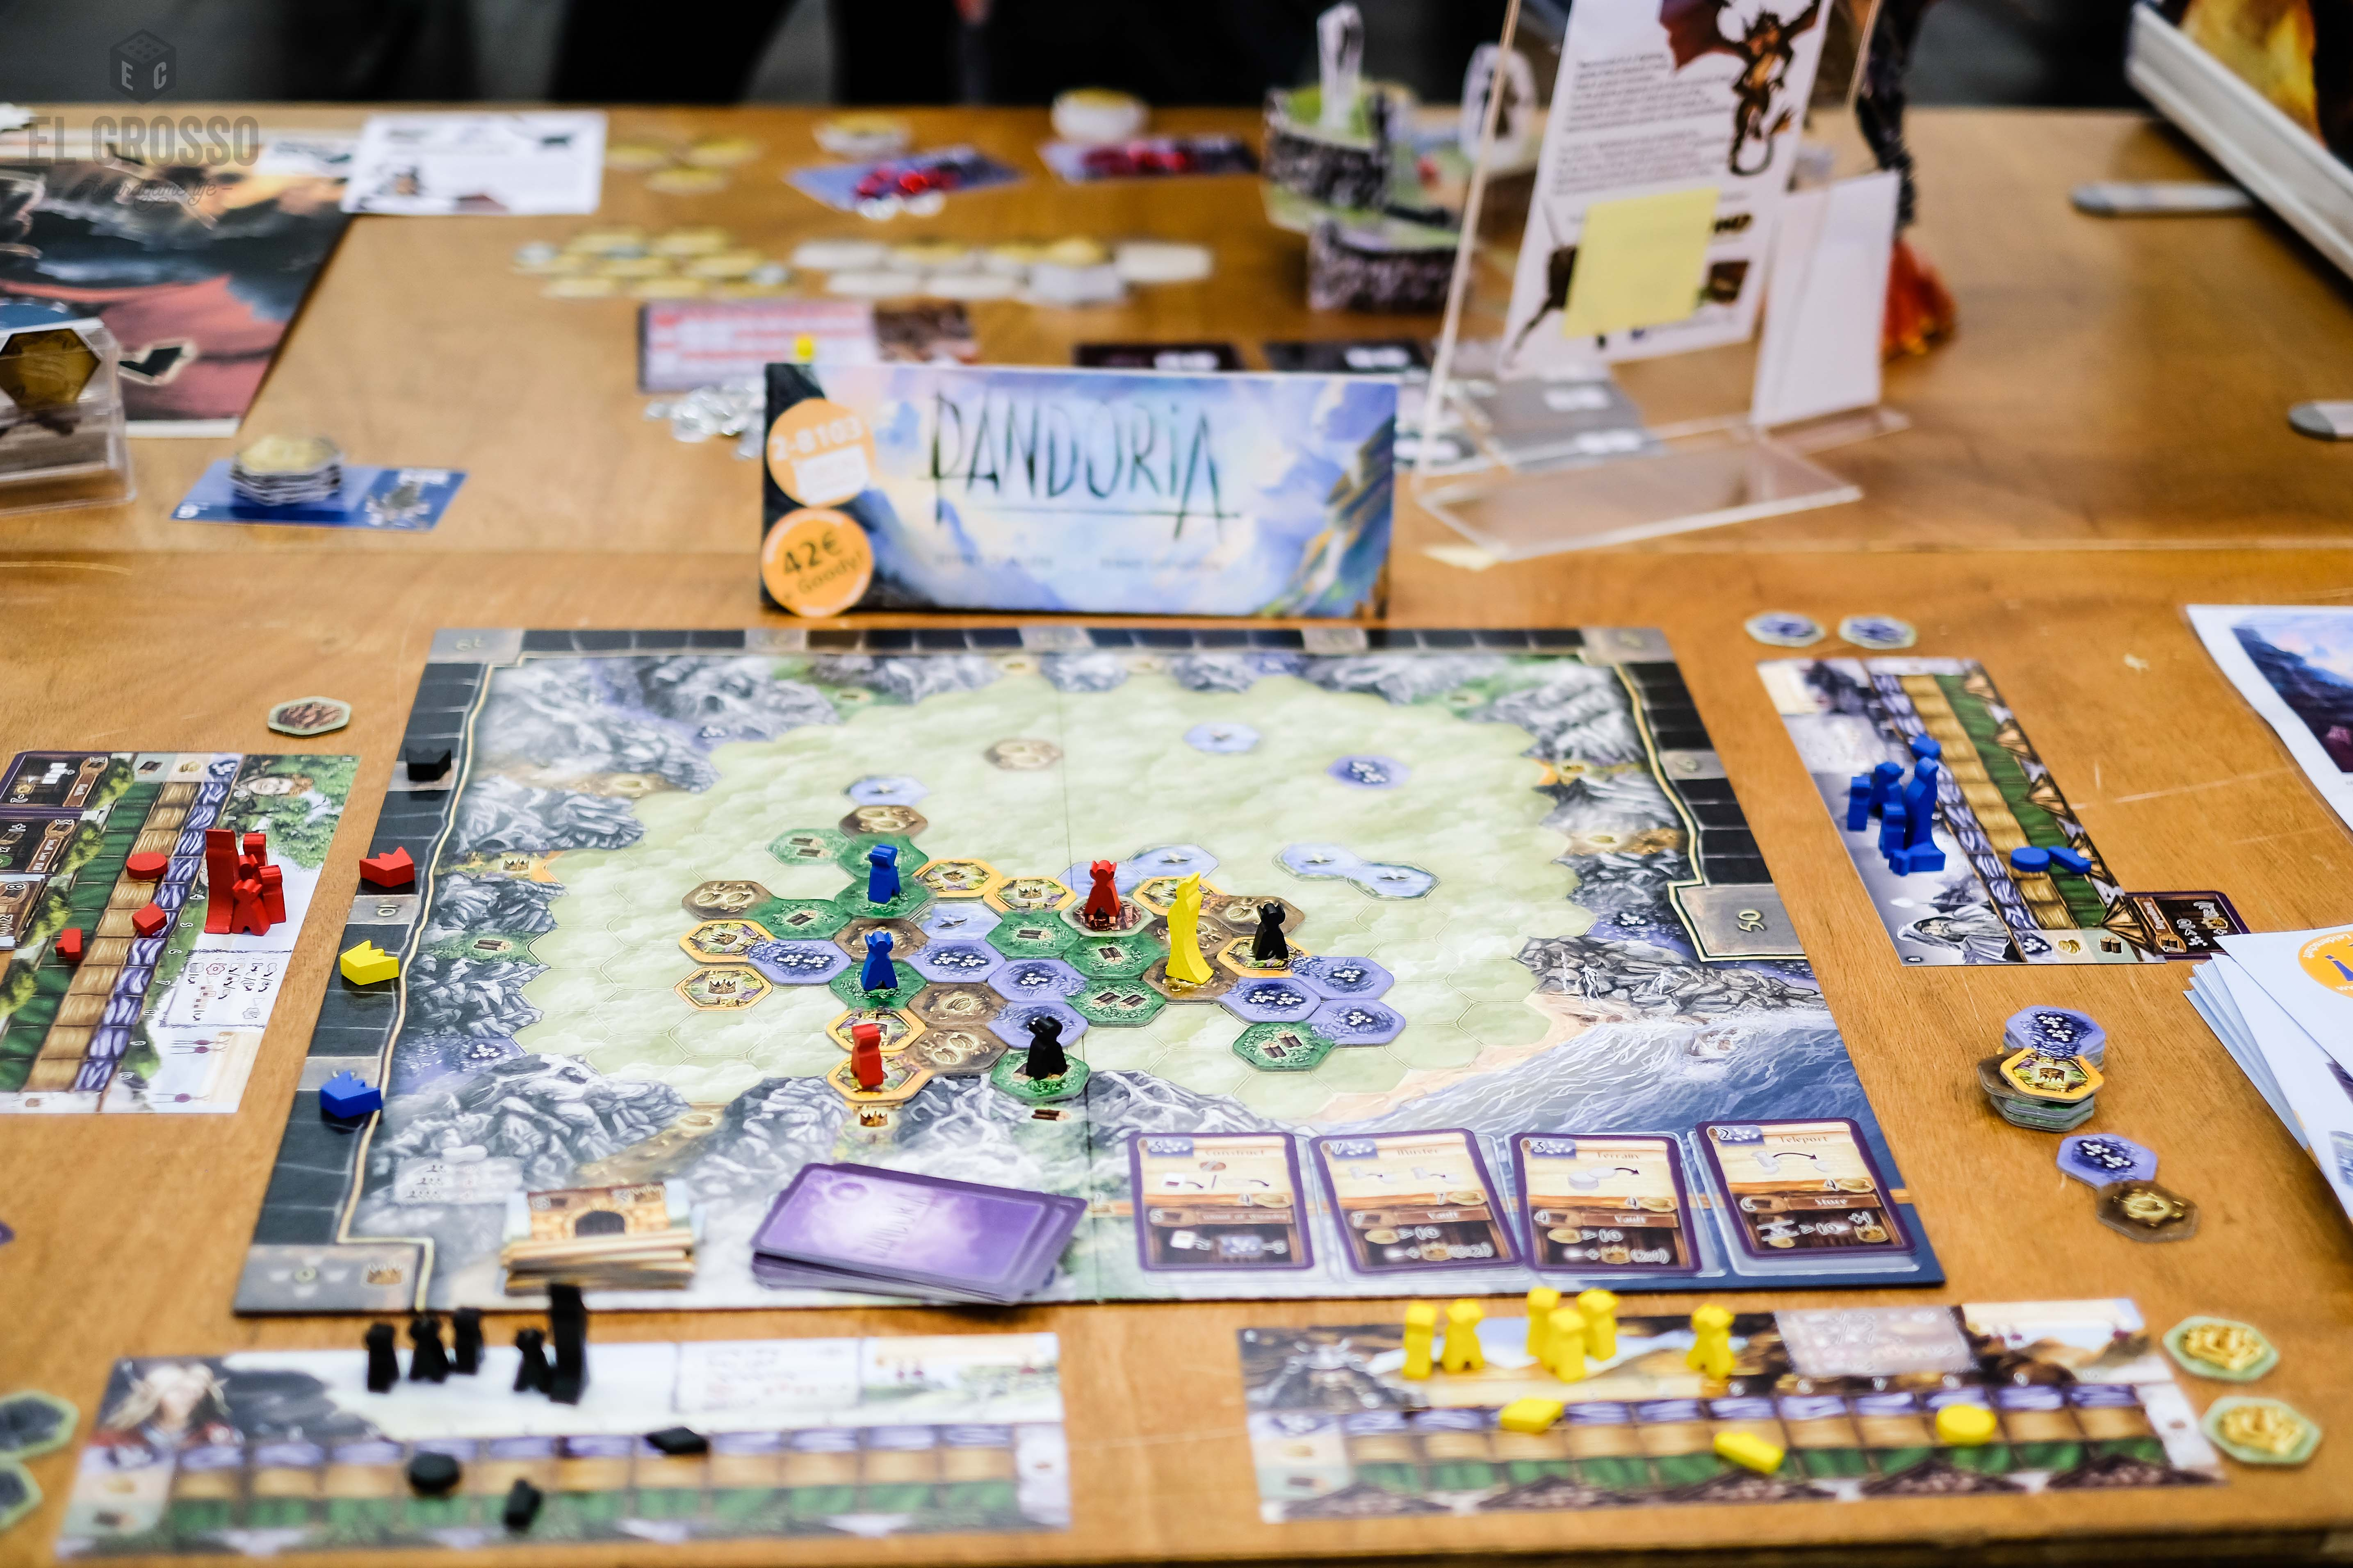 Pandoria Boardgame New